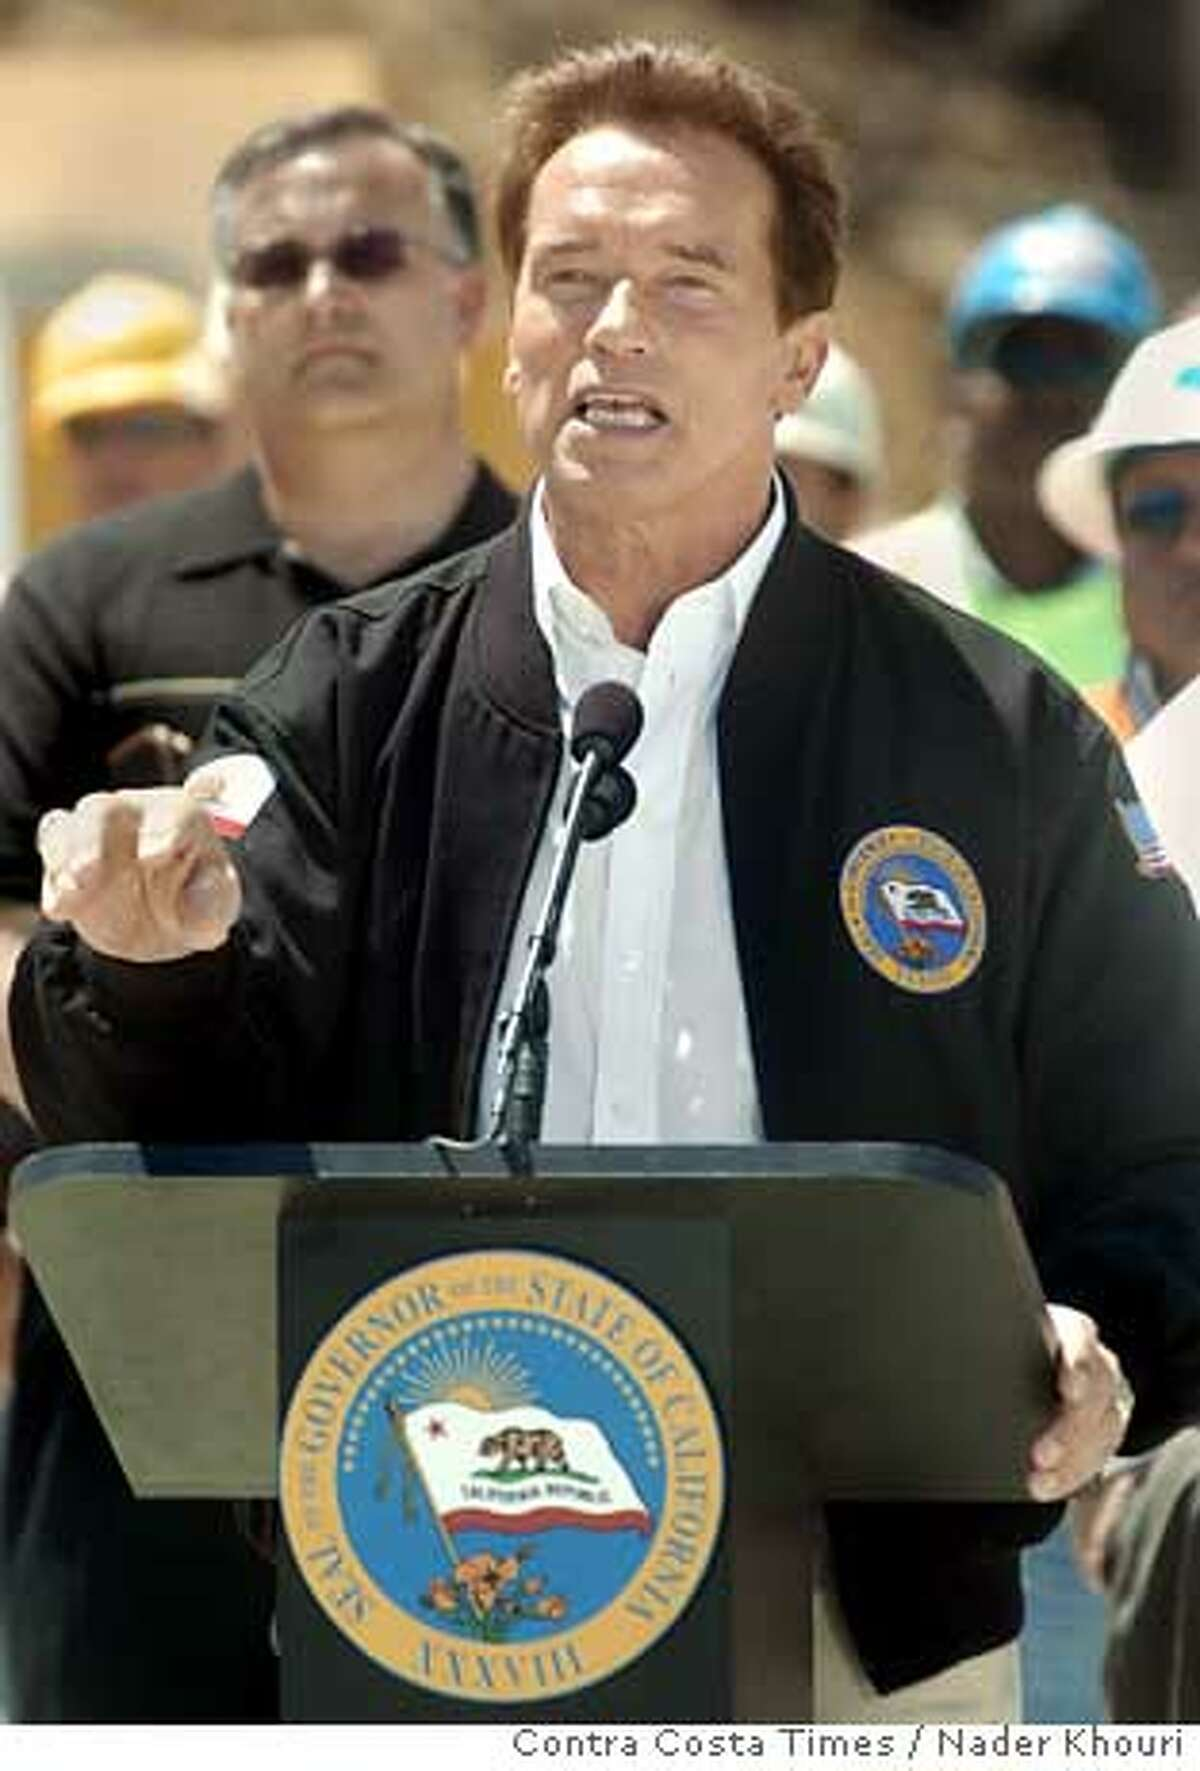 Governor Arnold Schwarzenegger speaks at a press conference in which he talked about his plans to increase transportation spending by $1.3 billion while standing on the future Highway 4 expansion under construction at Railroad Avenue in Pittsburg, Calif. on Wednesday May 12, 2005. Along with Arnold's supporters were a handful of people protesting the governor's education policy. (Contra Costa Times/Nader Khouri)